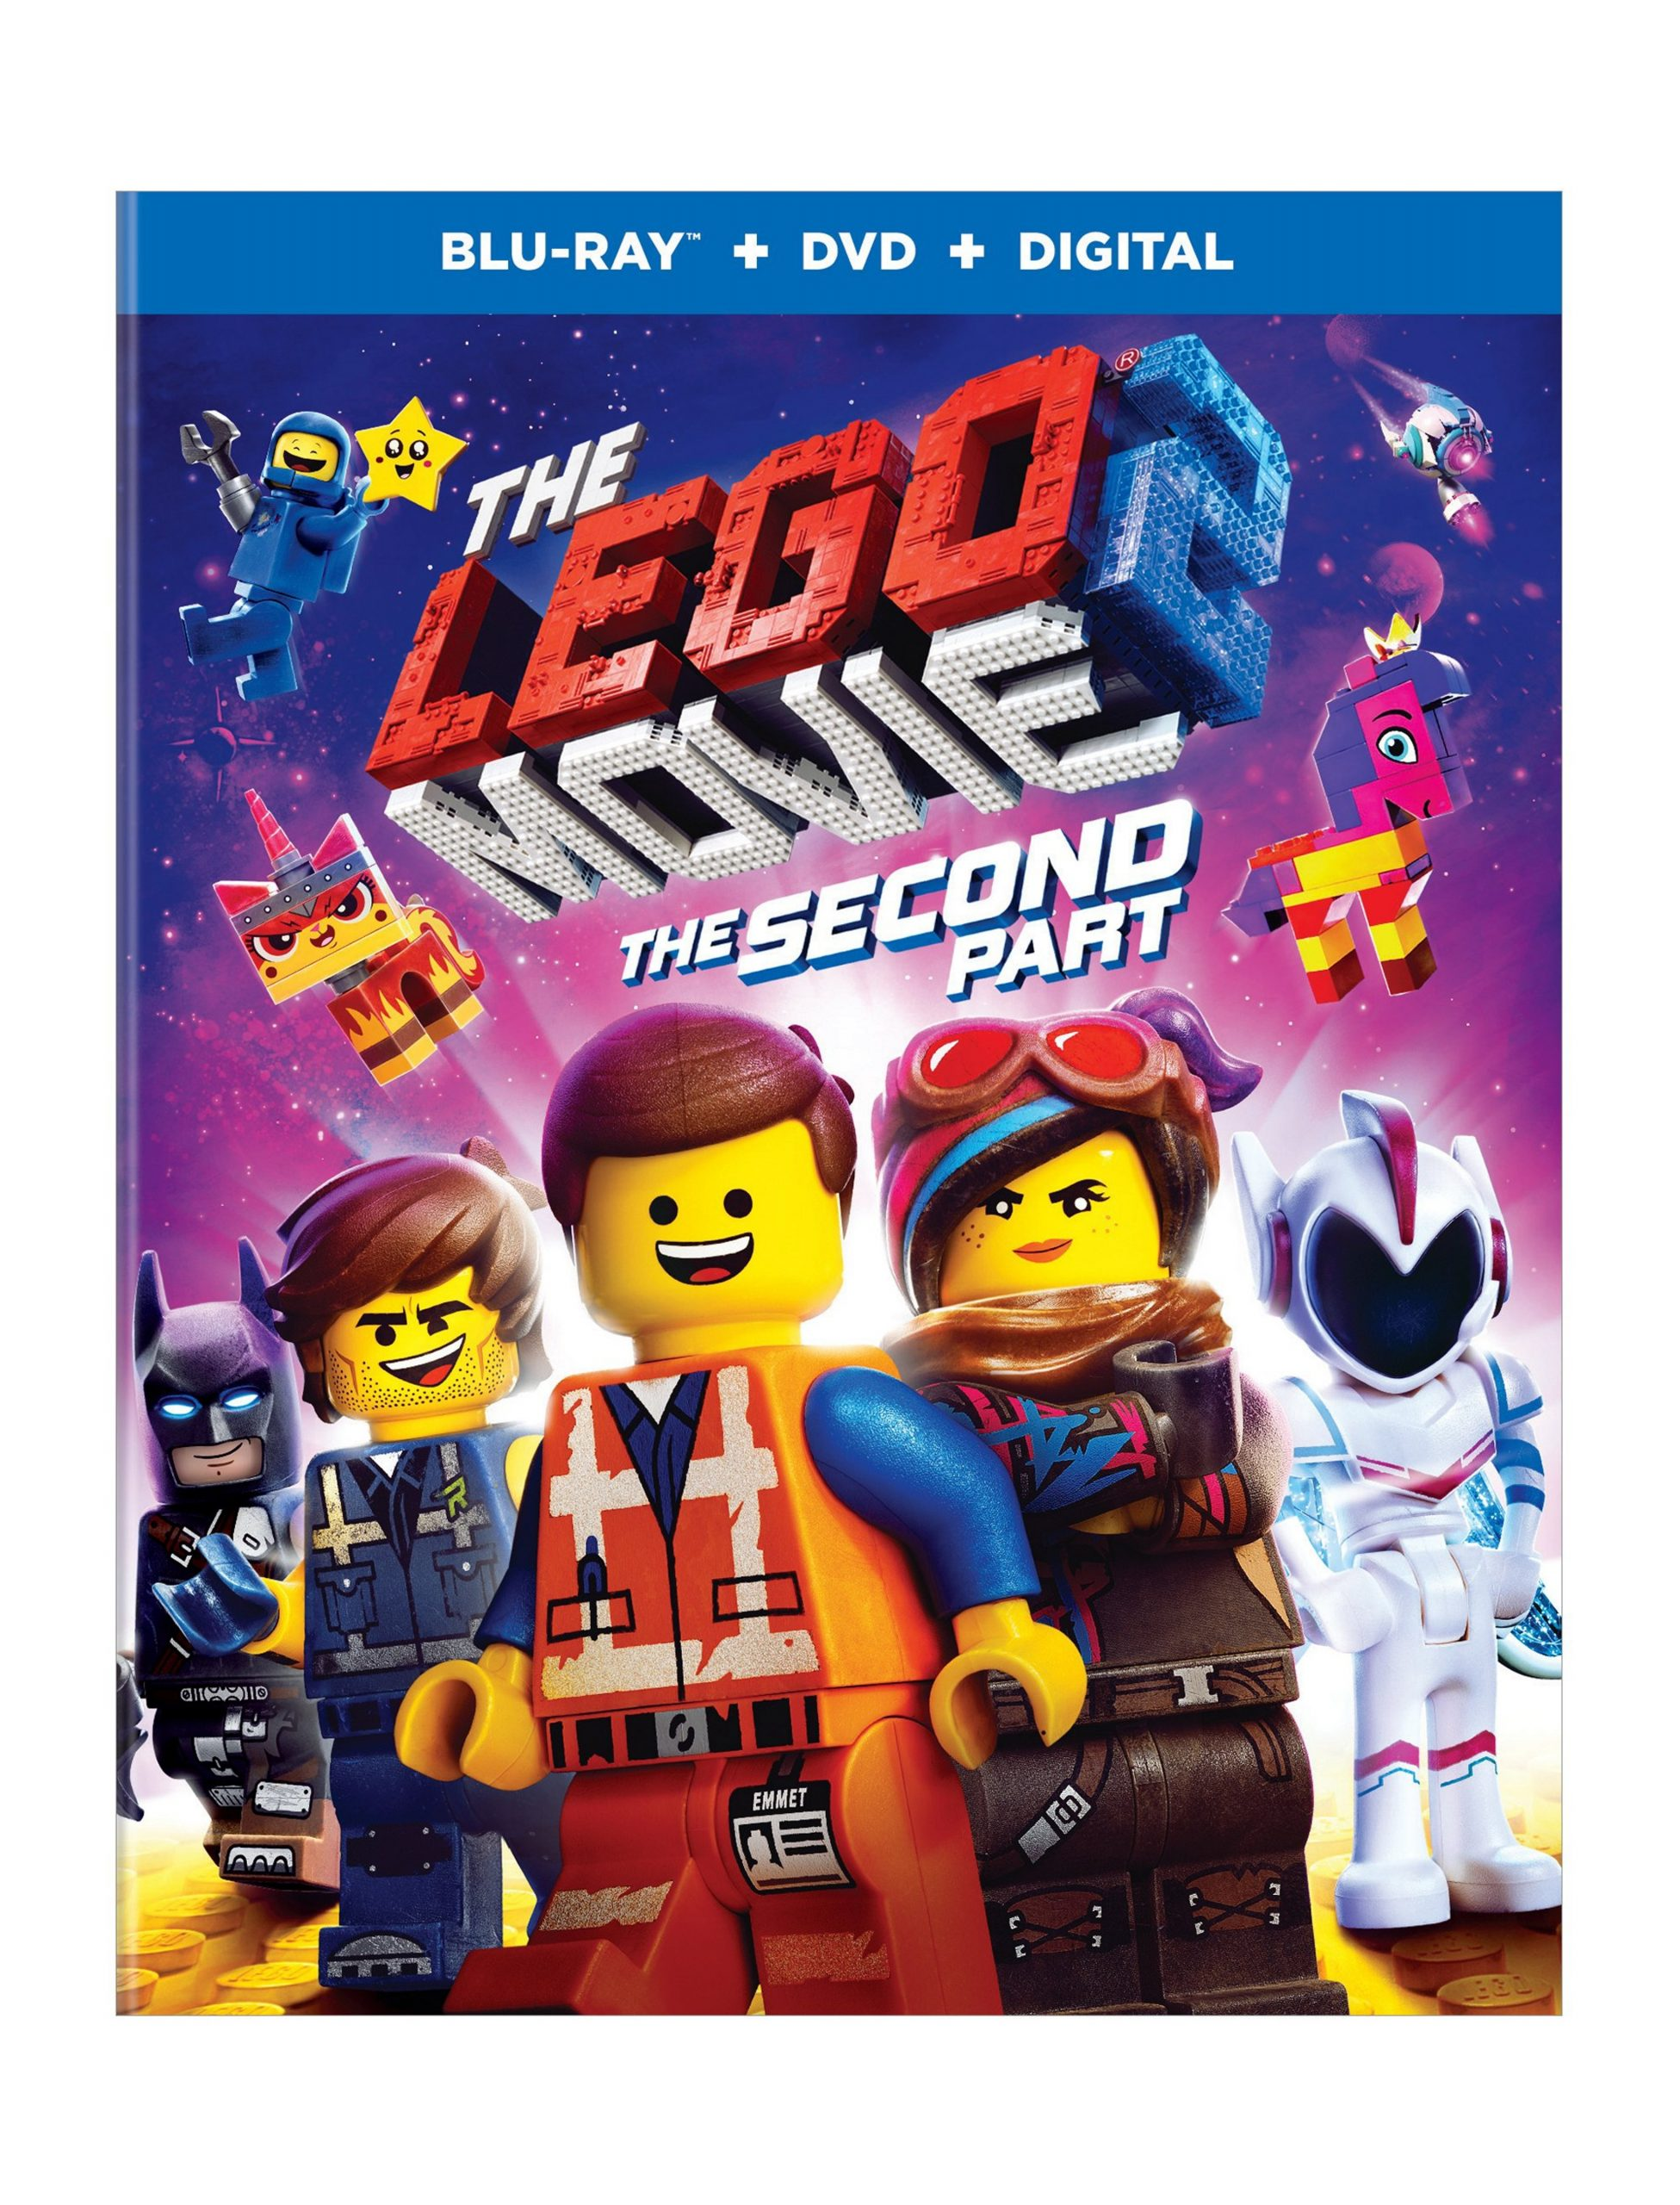 lego 5005885 movie 2 the second part blu ray scaled